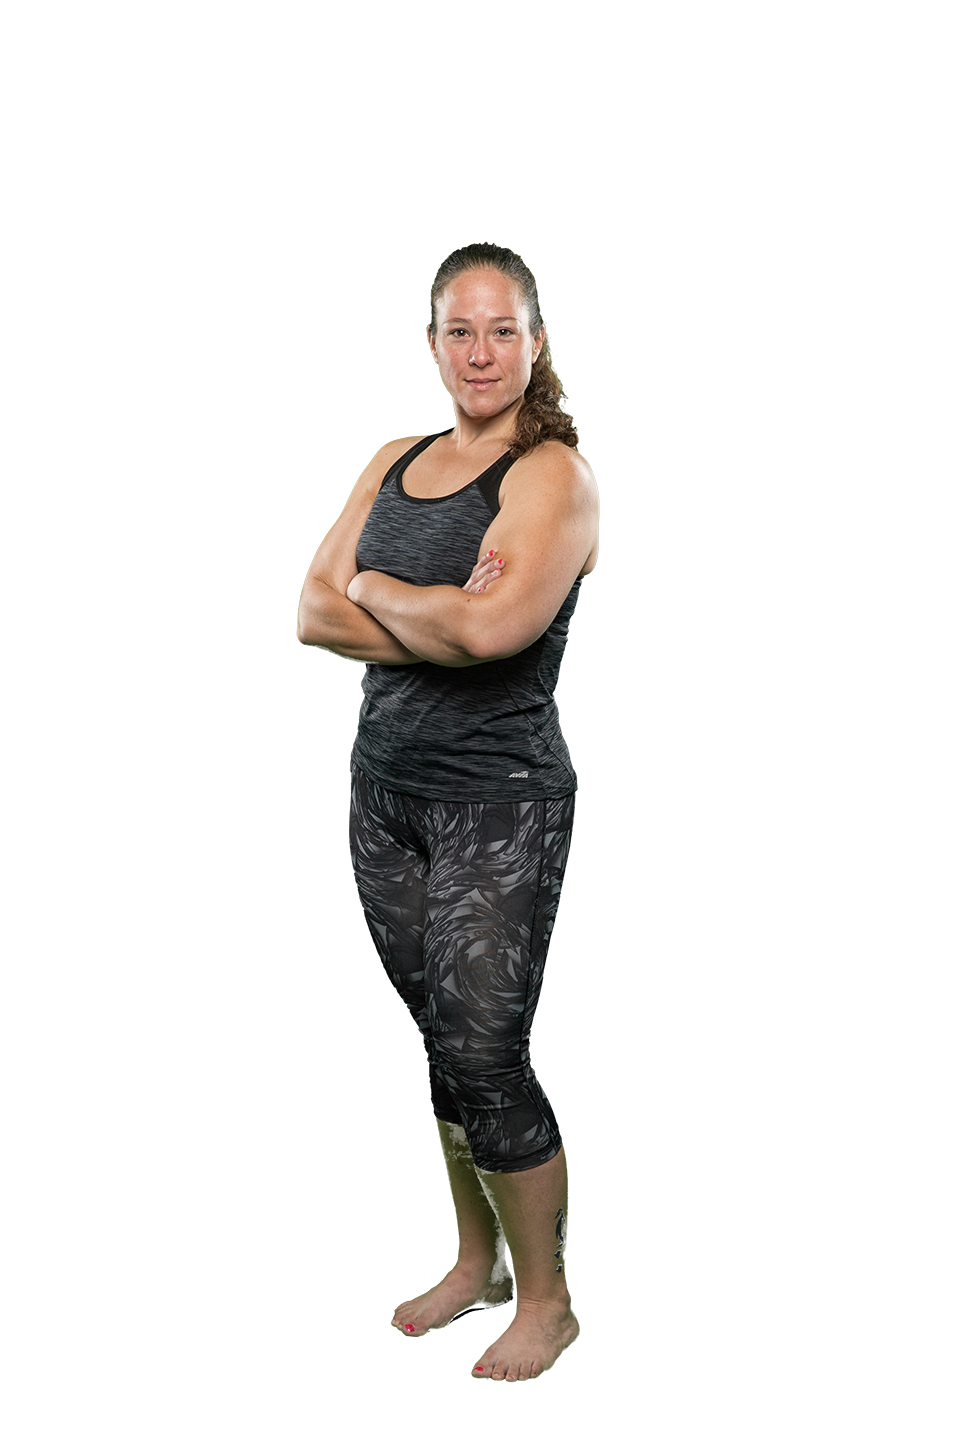 "Sarah - MMA Fitness InstructorSarah is a big proponent of ""you can't make a change until you're ready. You can only do it for yourself, no one else"" In 2012 she decided she was ready but only utilized traditional gyms without instructors, or classes - just equipment and space. In 2013 after suffering a major loss, she almost lost my passion for the gym but then in 2014 a friend talked her into walking through the doors of Young's MMA. Since putting on her first pair of gloves and doing her first fitness class, she has never looked back. She found not only a gym, a new passion and therapy but she had found a family. She started teaching MMA fitness in 2016. She loves seeing all the new and familiar faces that come to class to challenge themselves on a daily basis. The best part, she thinks, is seeing the relationships amongst the members, the friendships, the encouragement and the support. Sarah hopes to see you on the mats, where she will use her infectious energy to get you moving!"